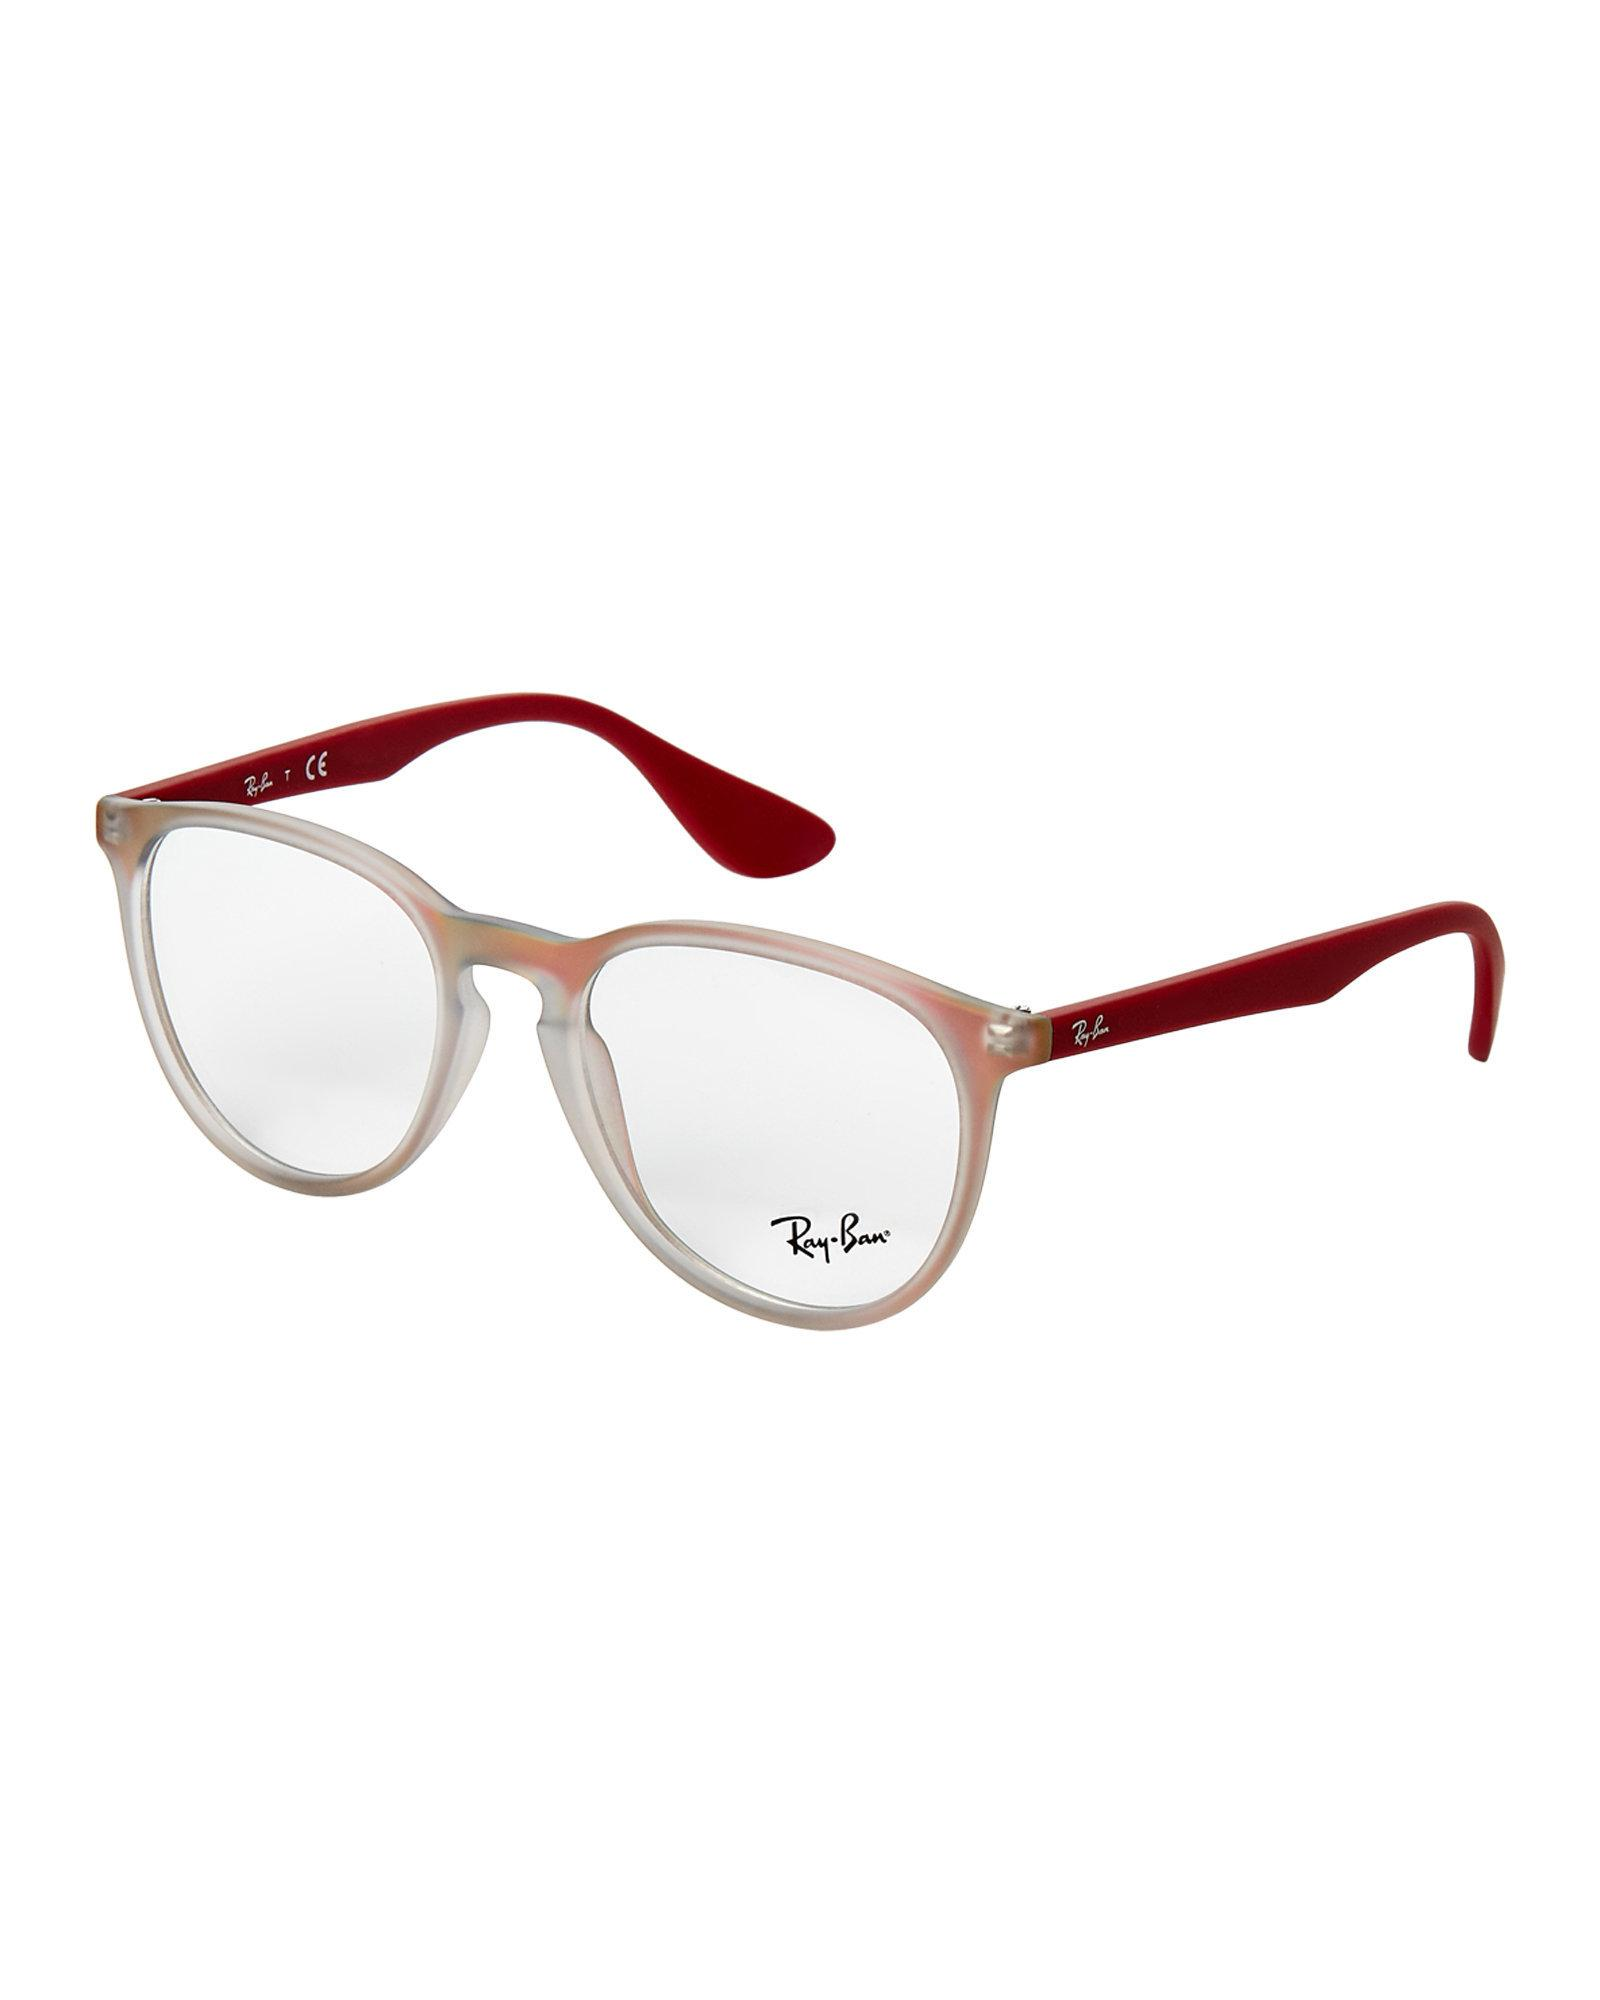 Lyst - Ray-Ban Rb7046 Round Optical Frames